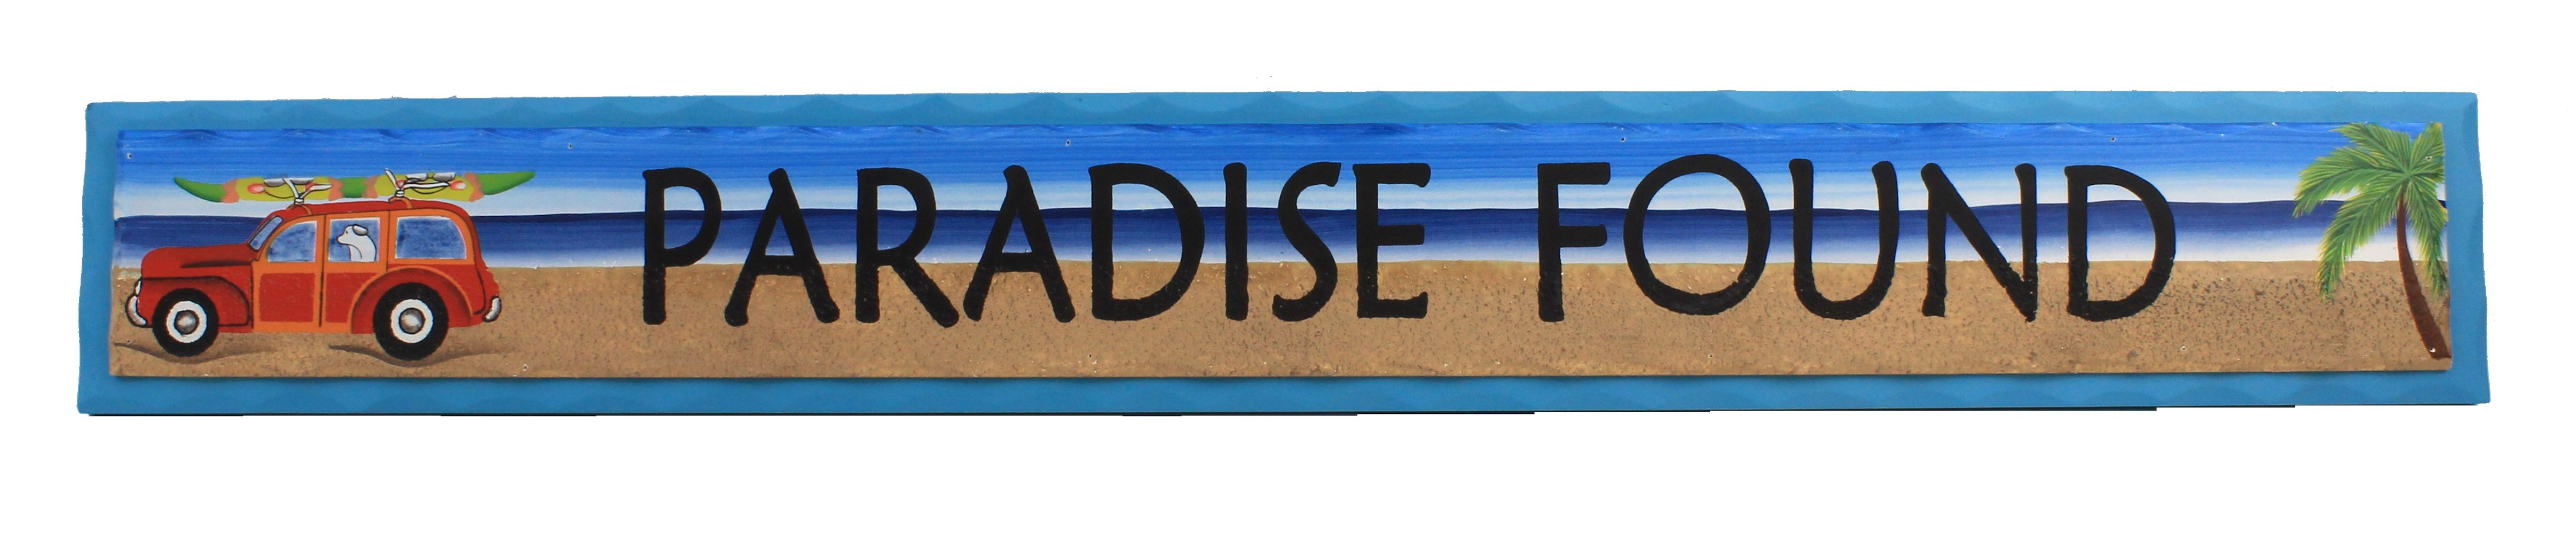 "35"" Paradise Found Wooden Sign - Hanging Beach Decor"